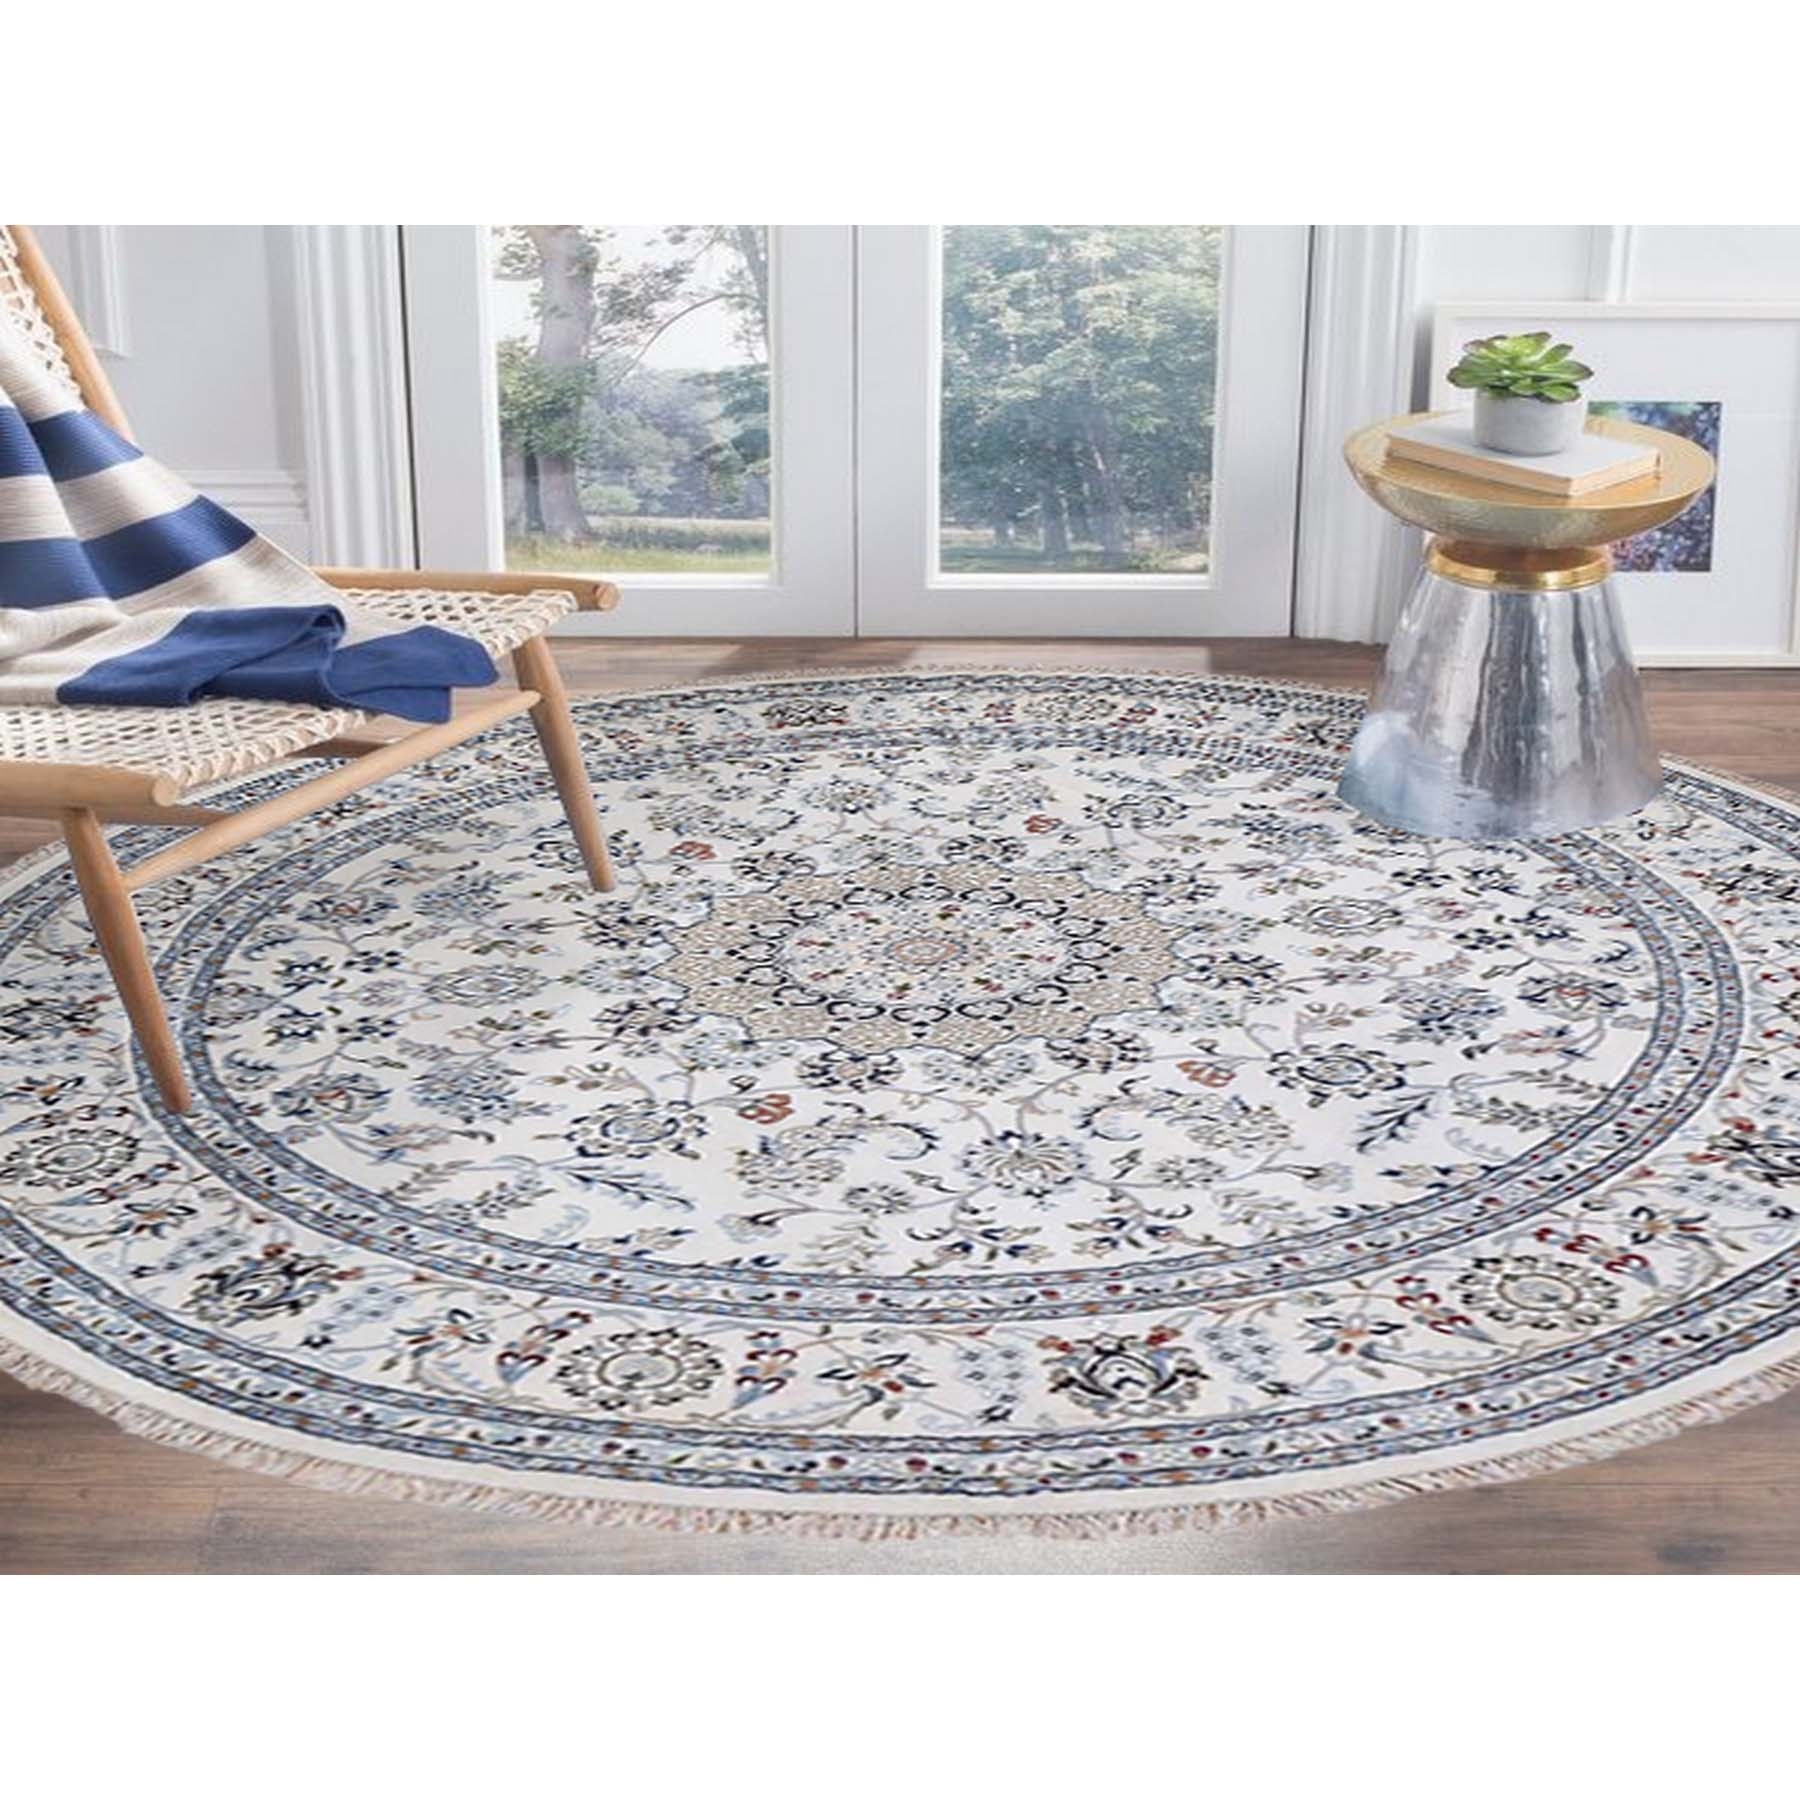 """9'1""""x9'1"""" 250 KPSI Ivory Nain Wool and Silk Hand Knotted Round Oriental Rug"""